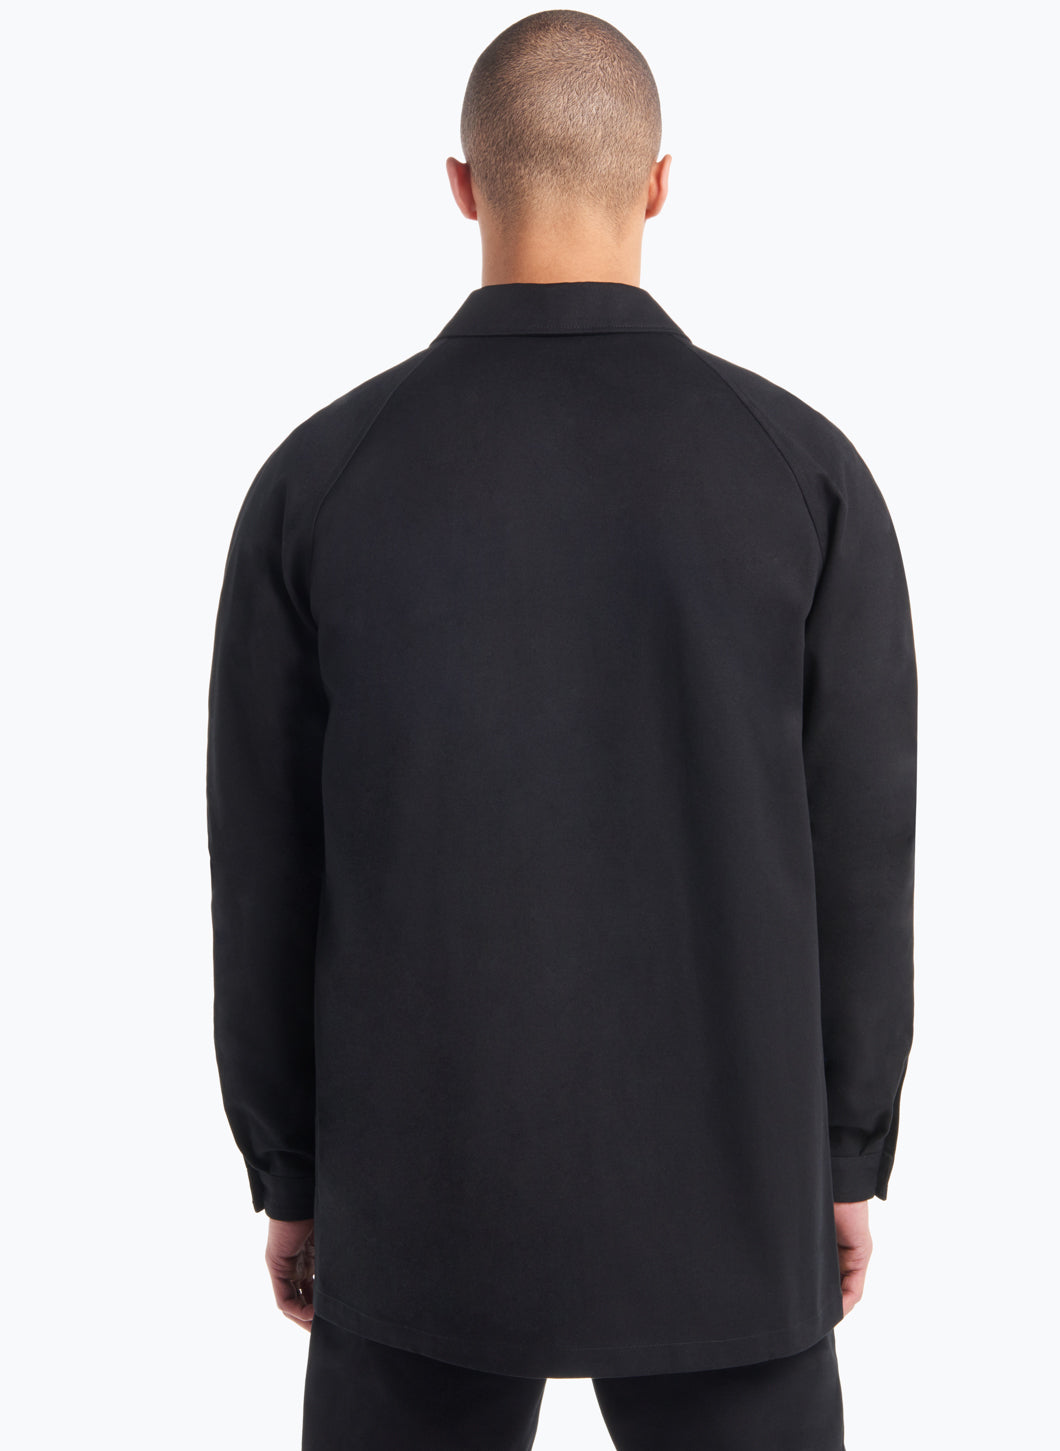 Raglan Sleeve Jacket-Shirt in Black Gabardine